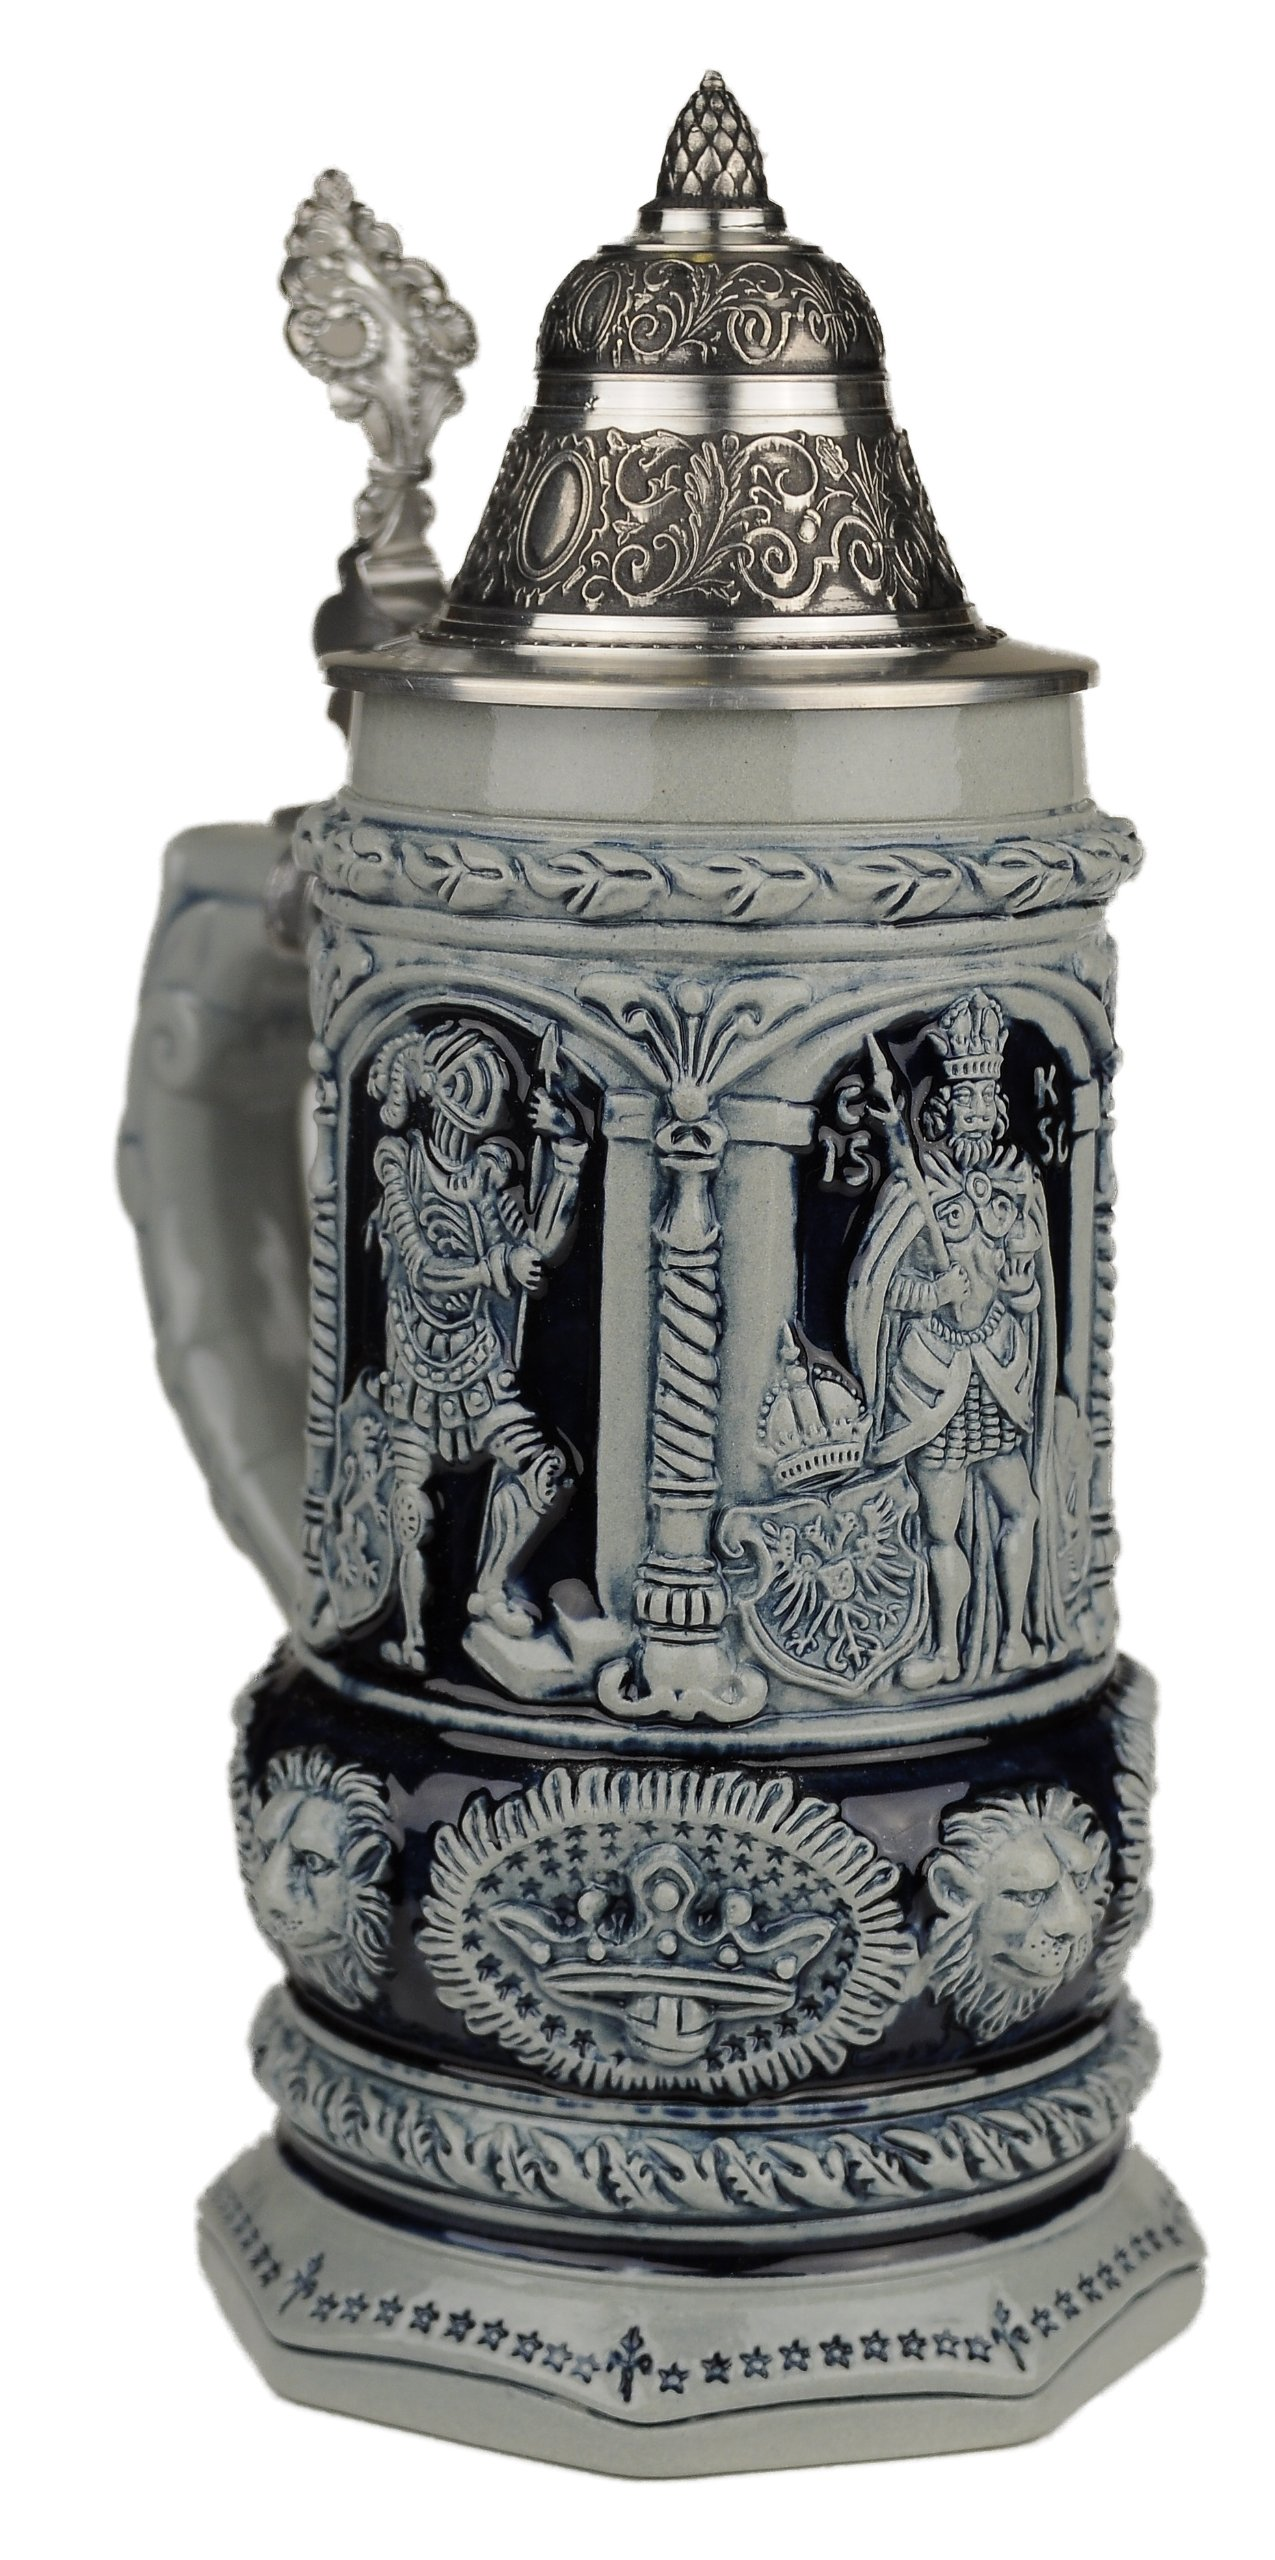 Beer Steins By King - Thewalt 1893 Stein Of Kings Relief German Stein (Beer Mug) 0.75l Limited